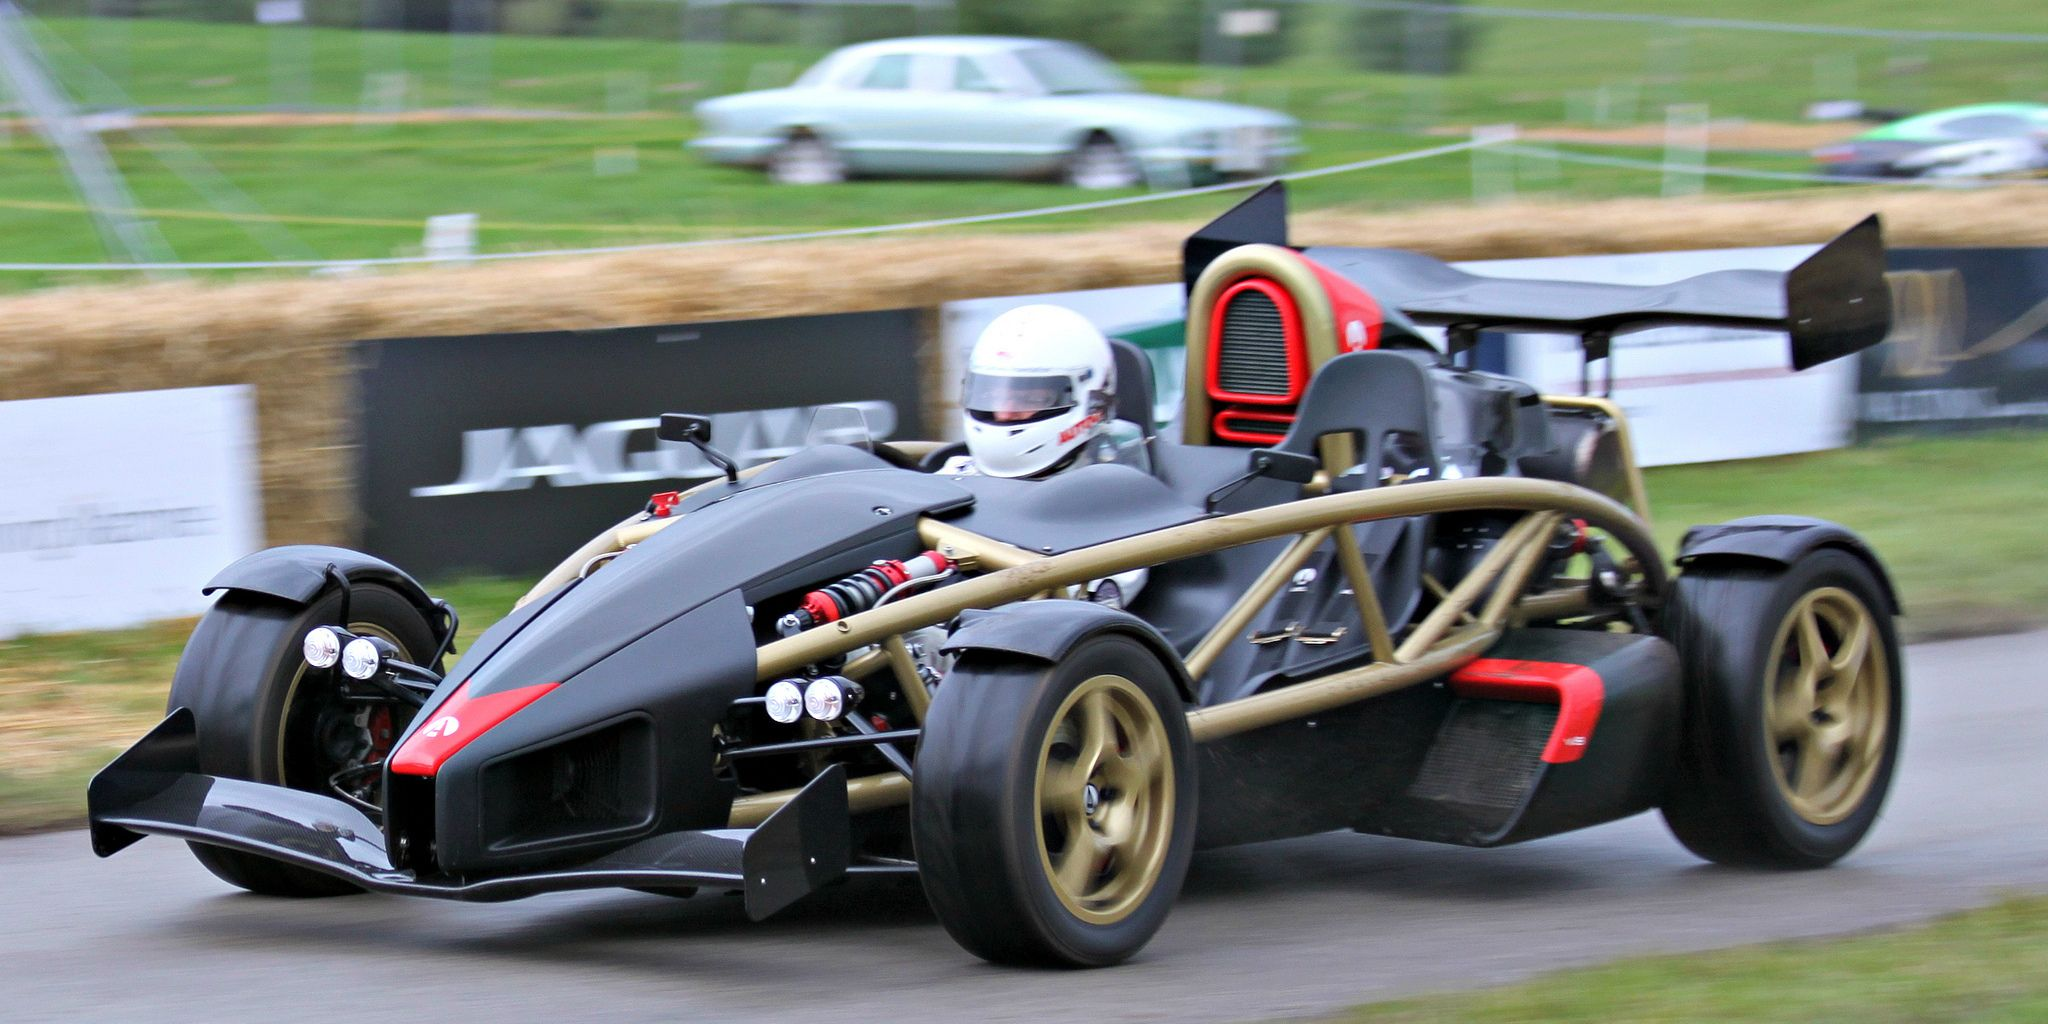 The Ariel Atom's V8 Is a Masterpiece